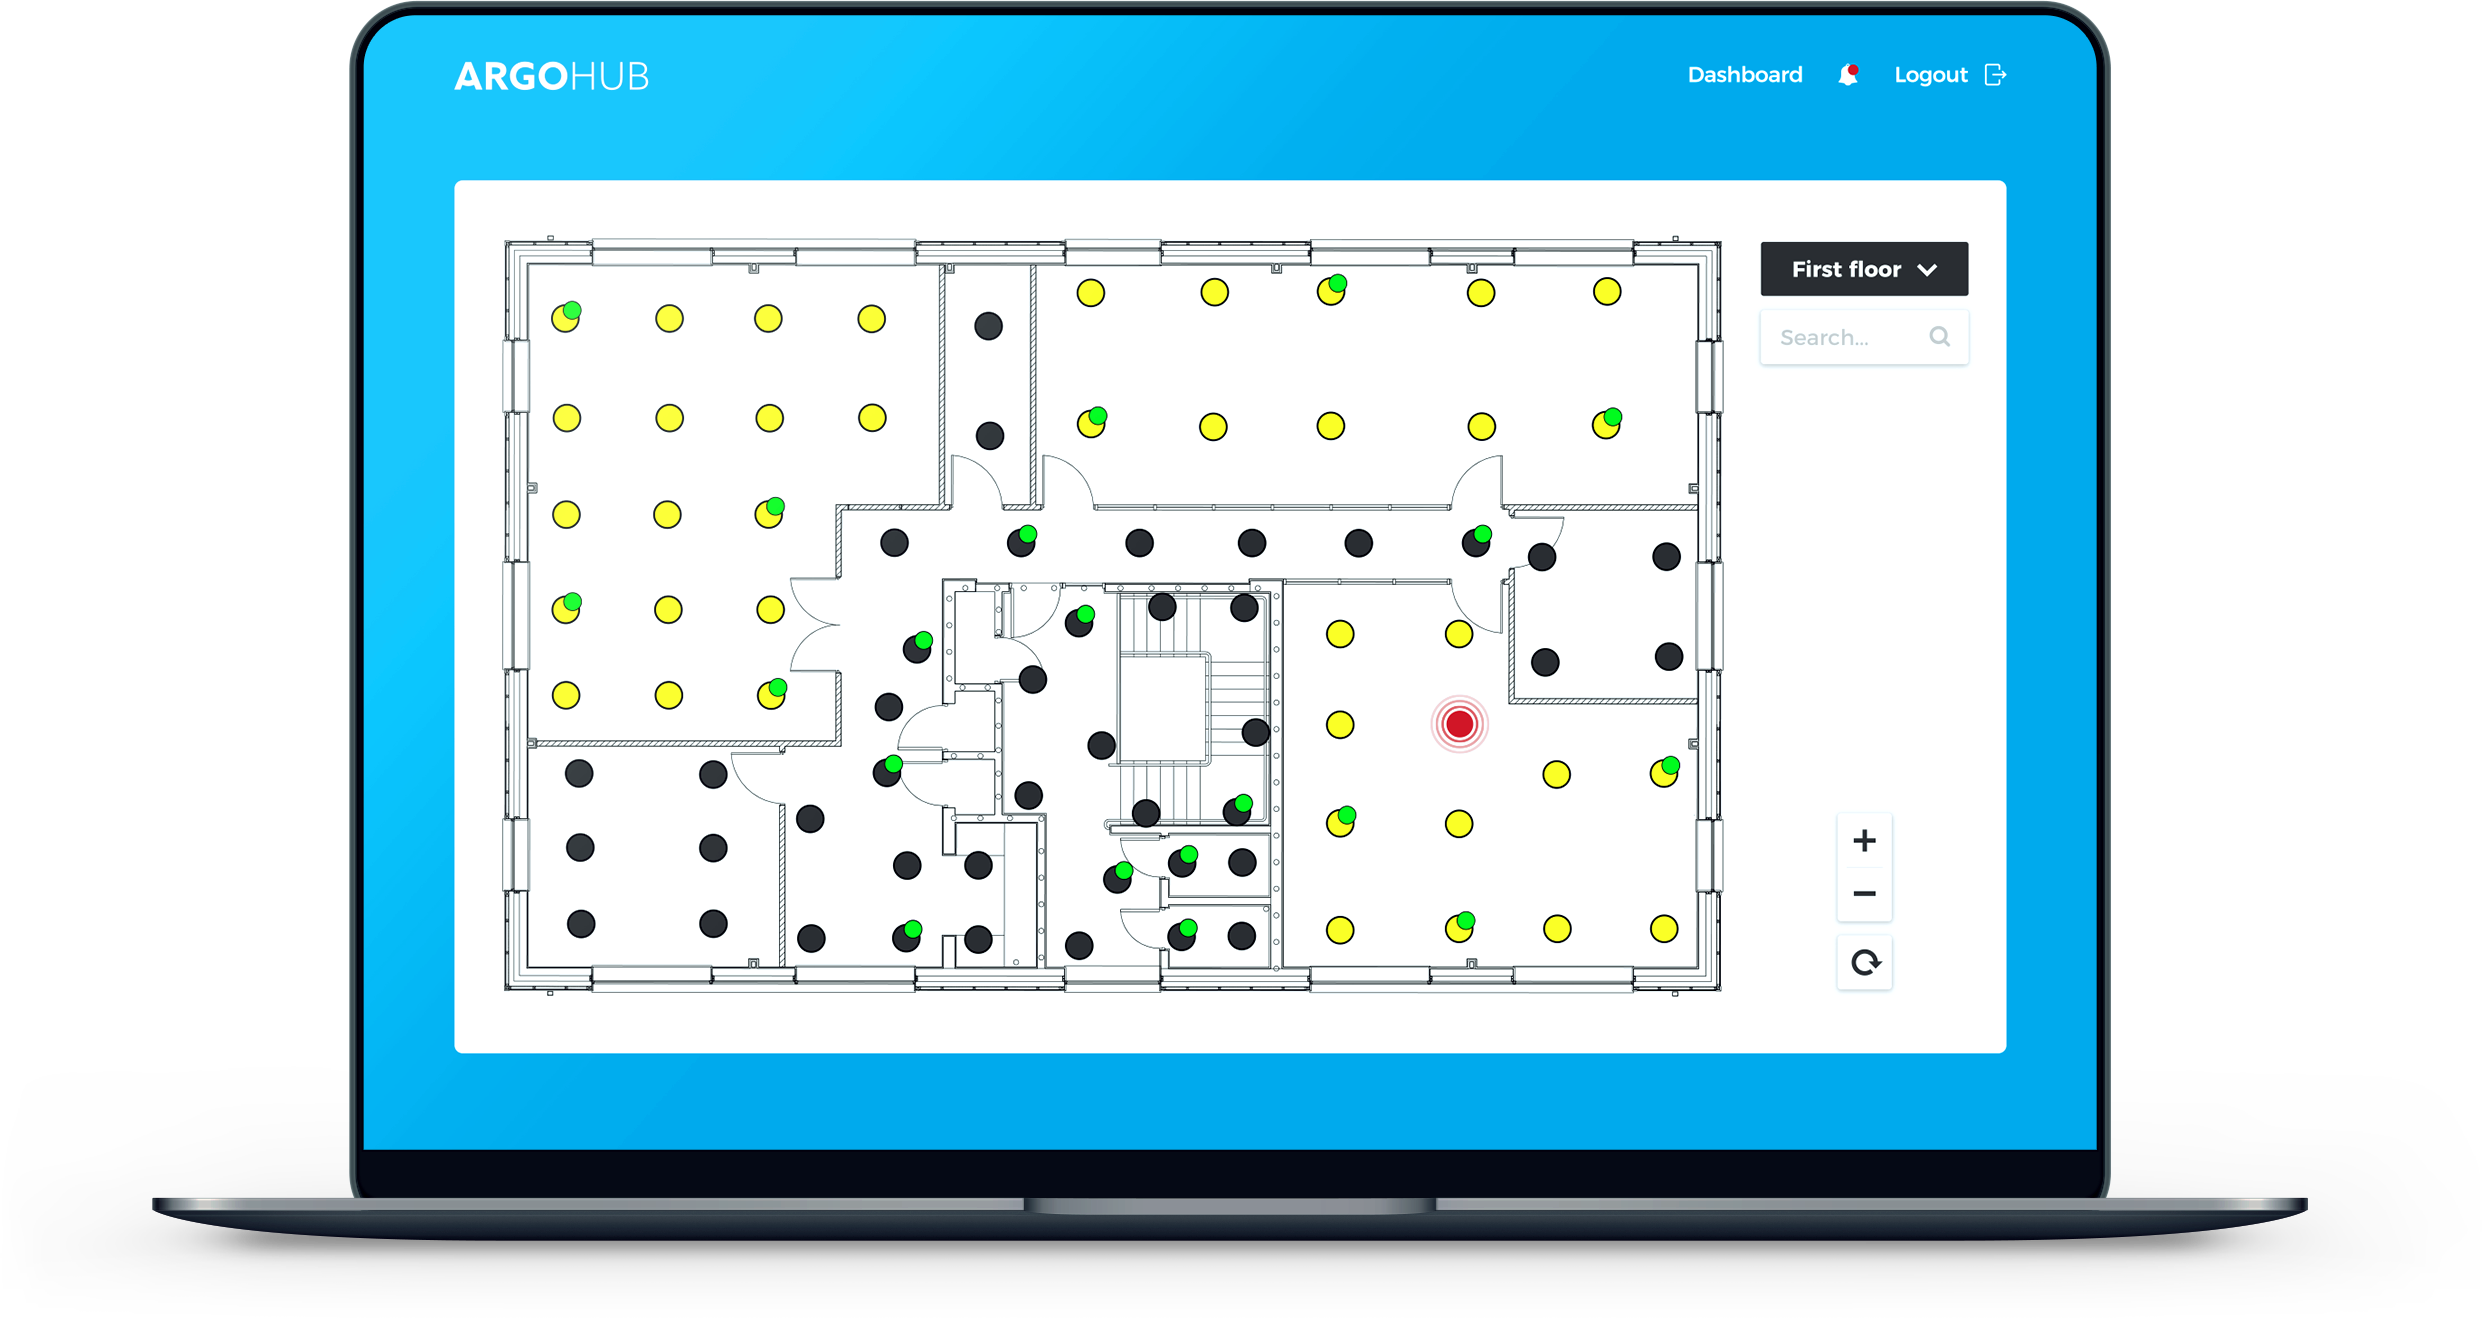 ARGOHub software floorplan view